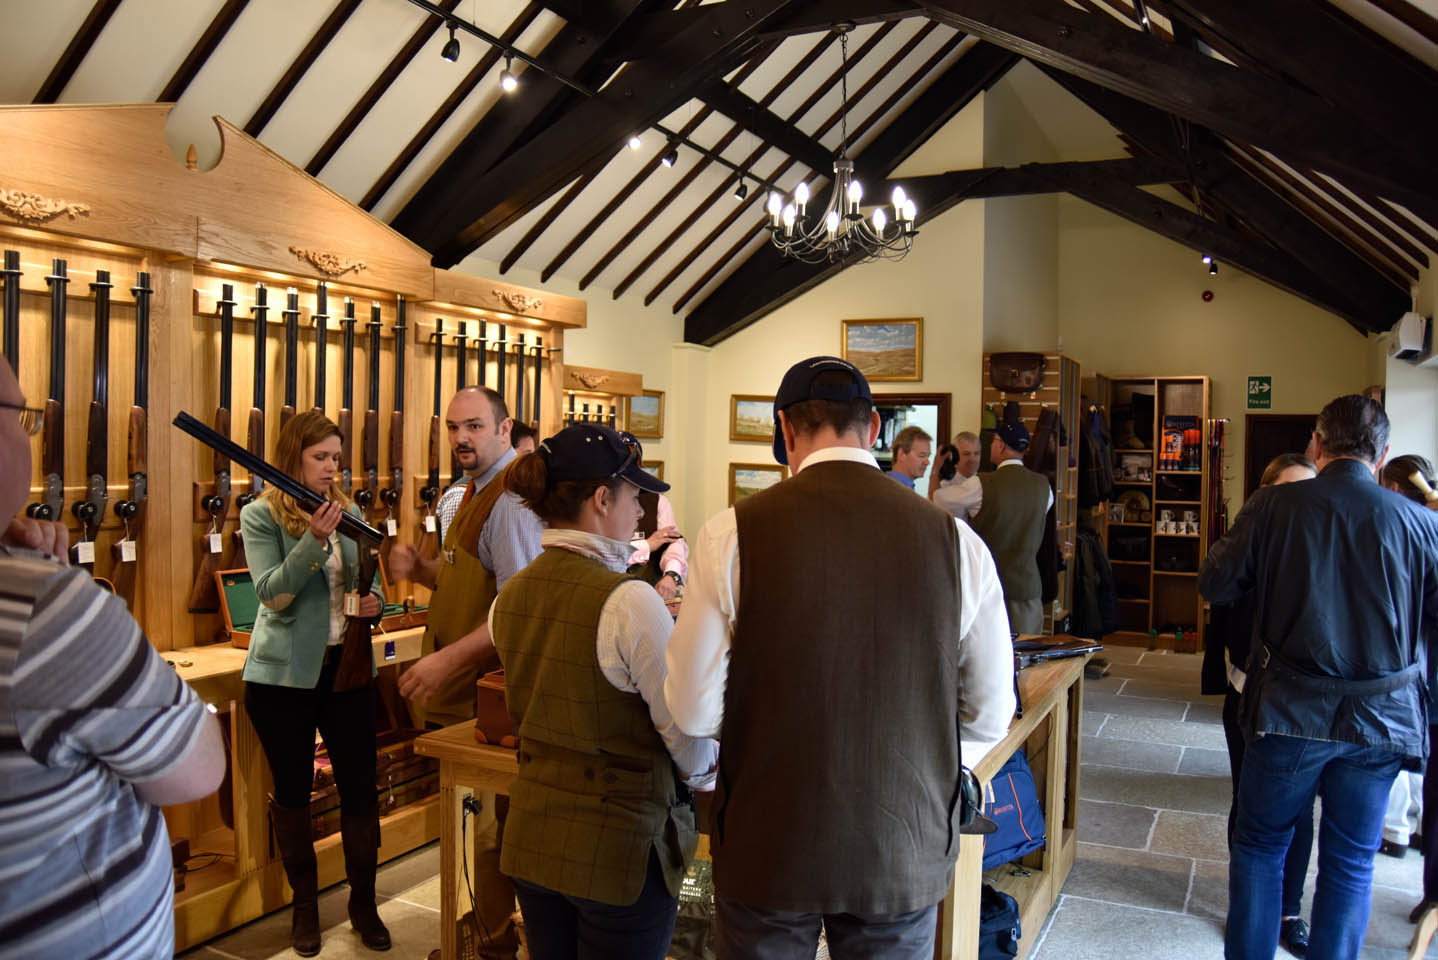 Customers being shown the guns at the Sportarm at Lady's Wood Gun Room